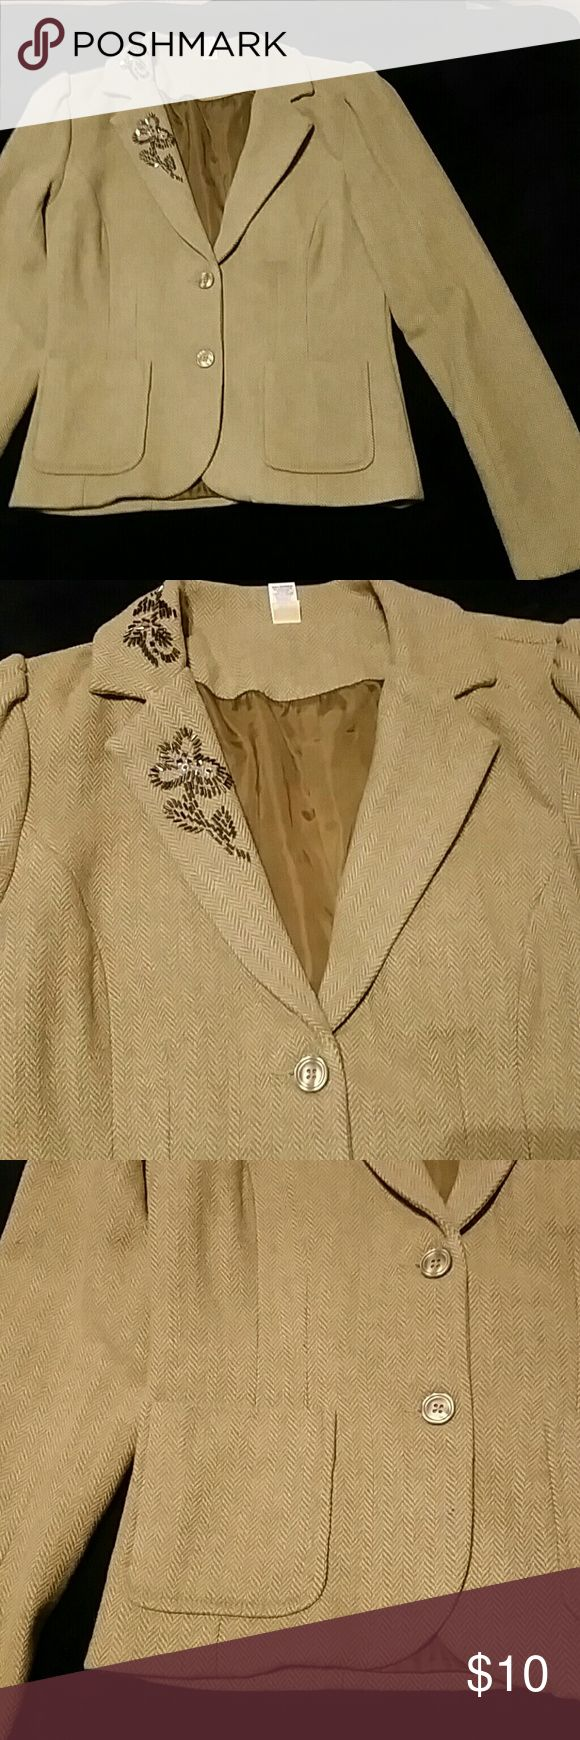 Old Navy Tweed Blazer Tweed Blazer from old navy with embellishments on left lapel. Very cute just never matched my style. Overall good condition. Old Navy Jackets & Coats Blazers